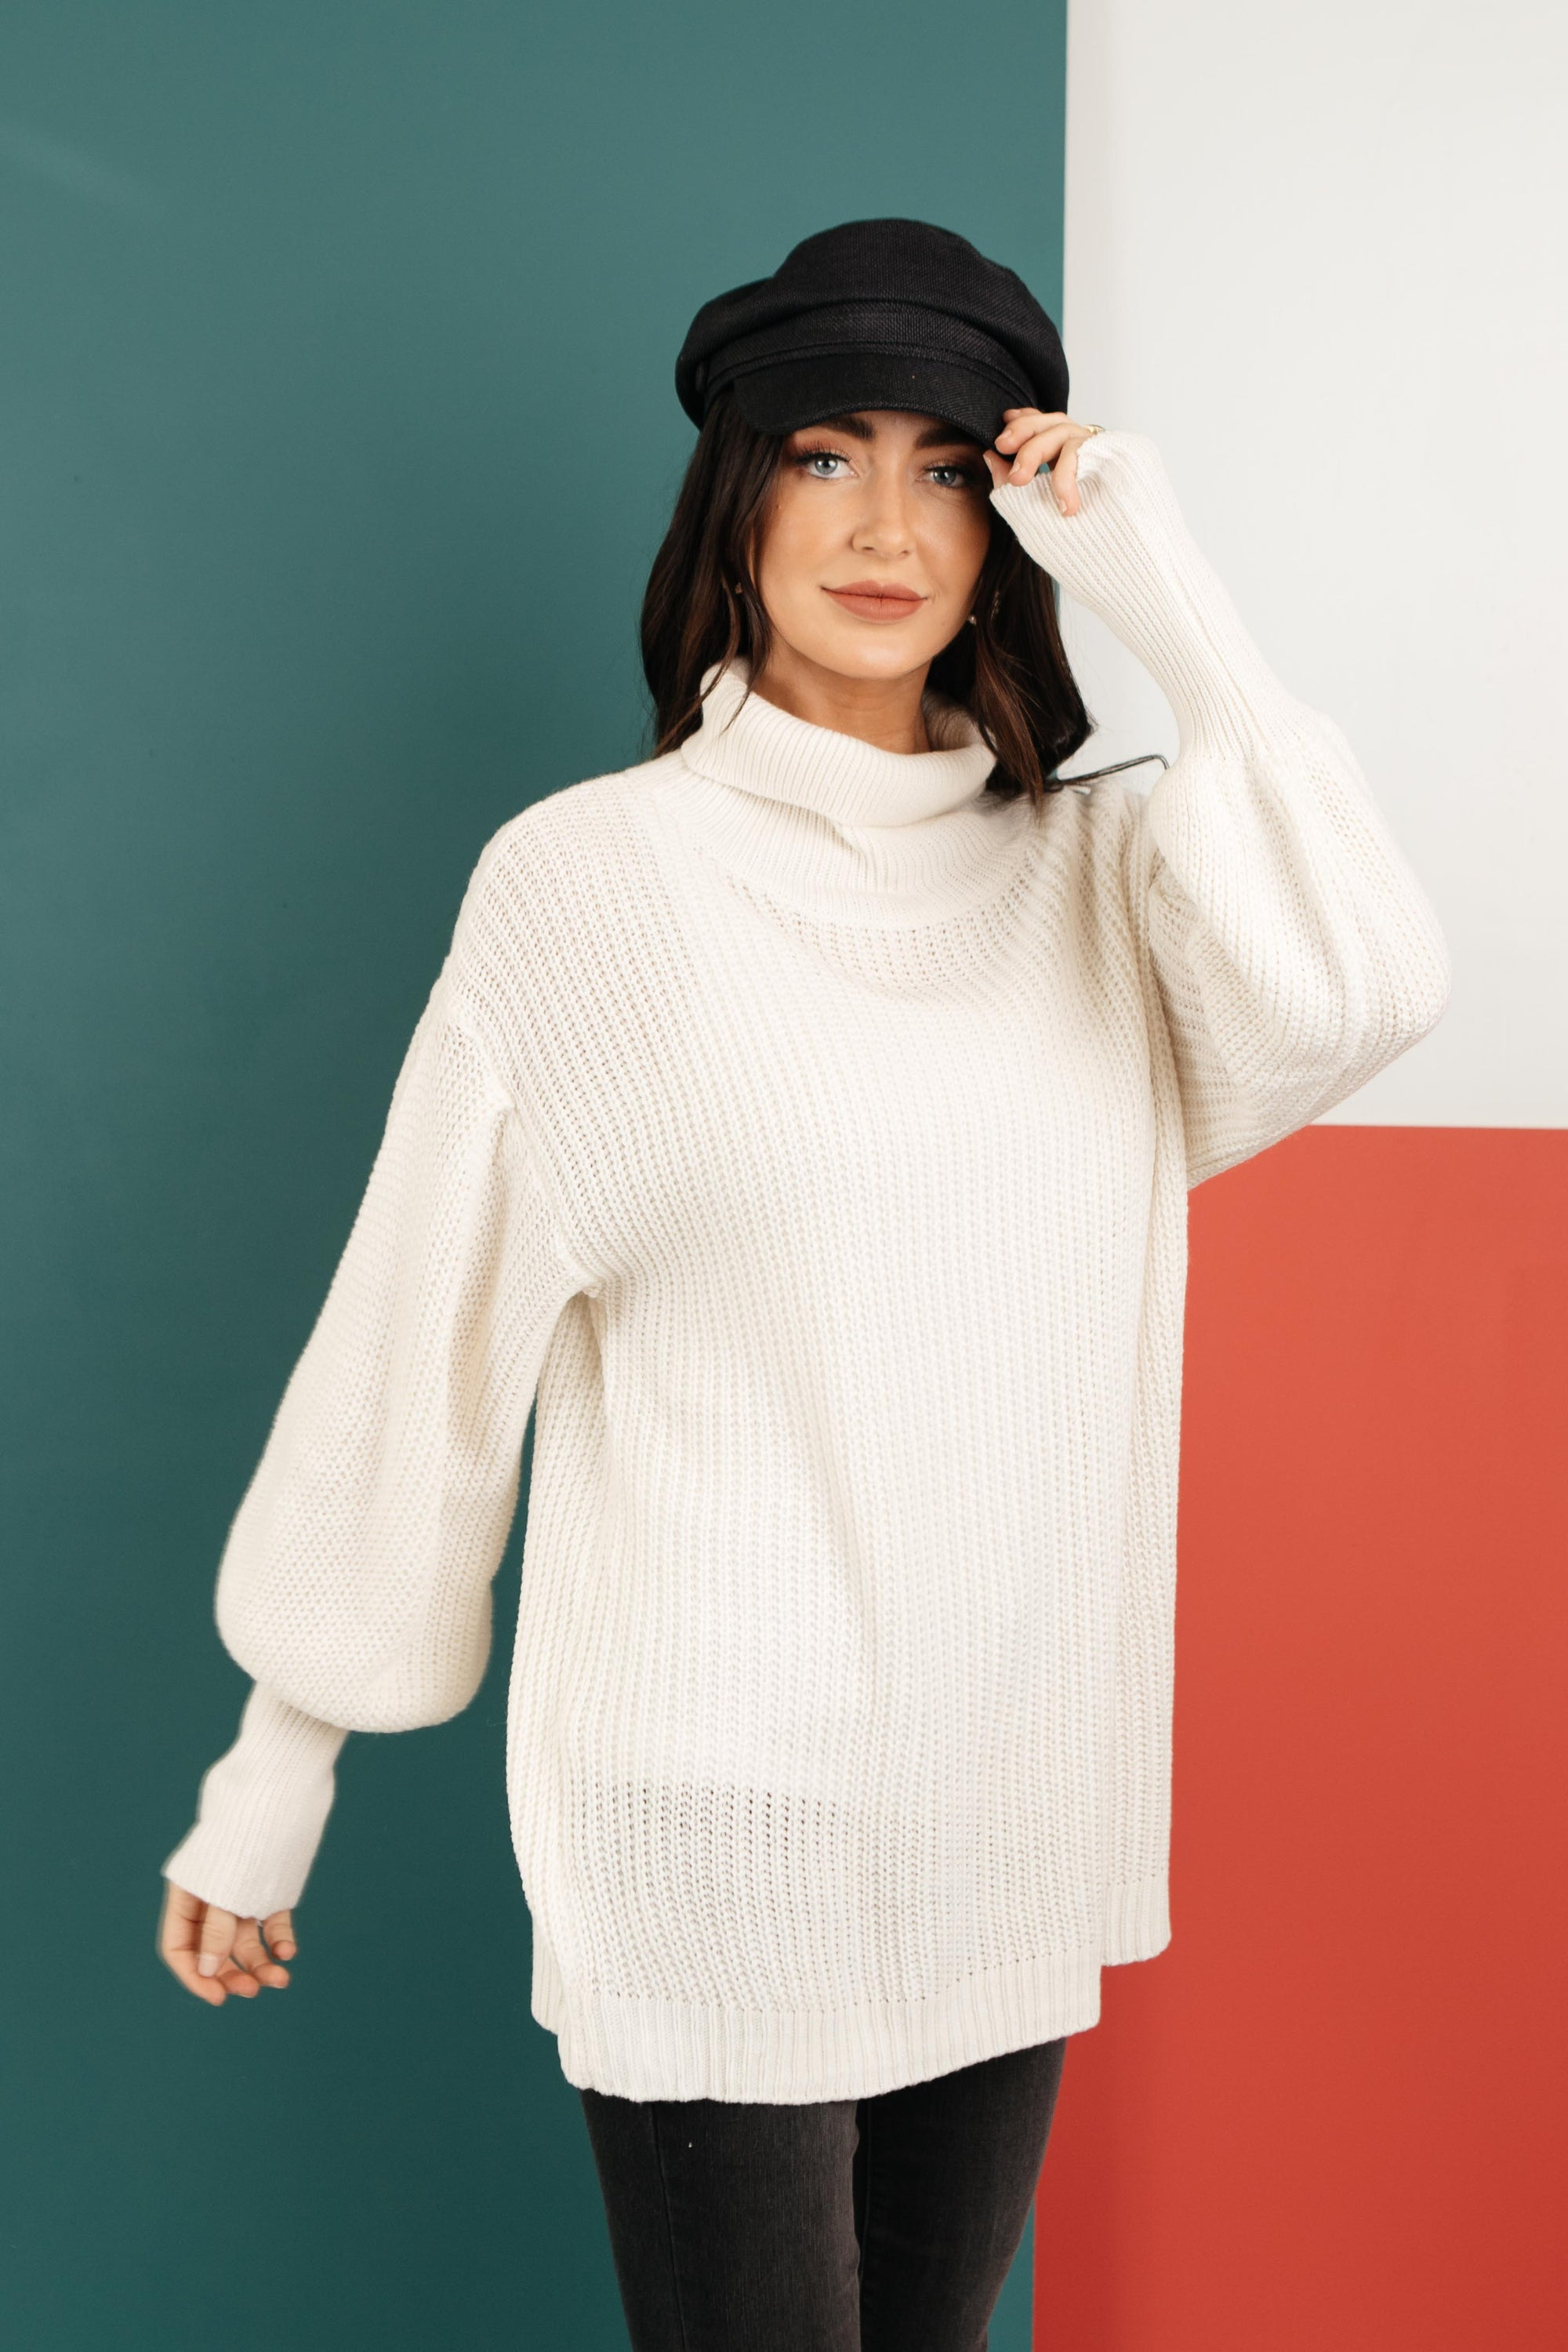 Cream Colored Classic Knit Sweater-[option4]-[option5]-[option6]-[option7]-[option8]-Womens-Clothing-Shop